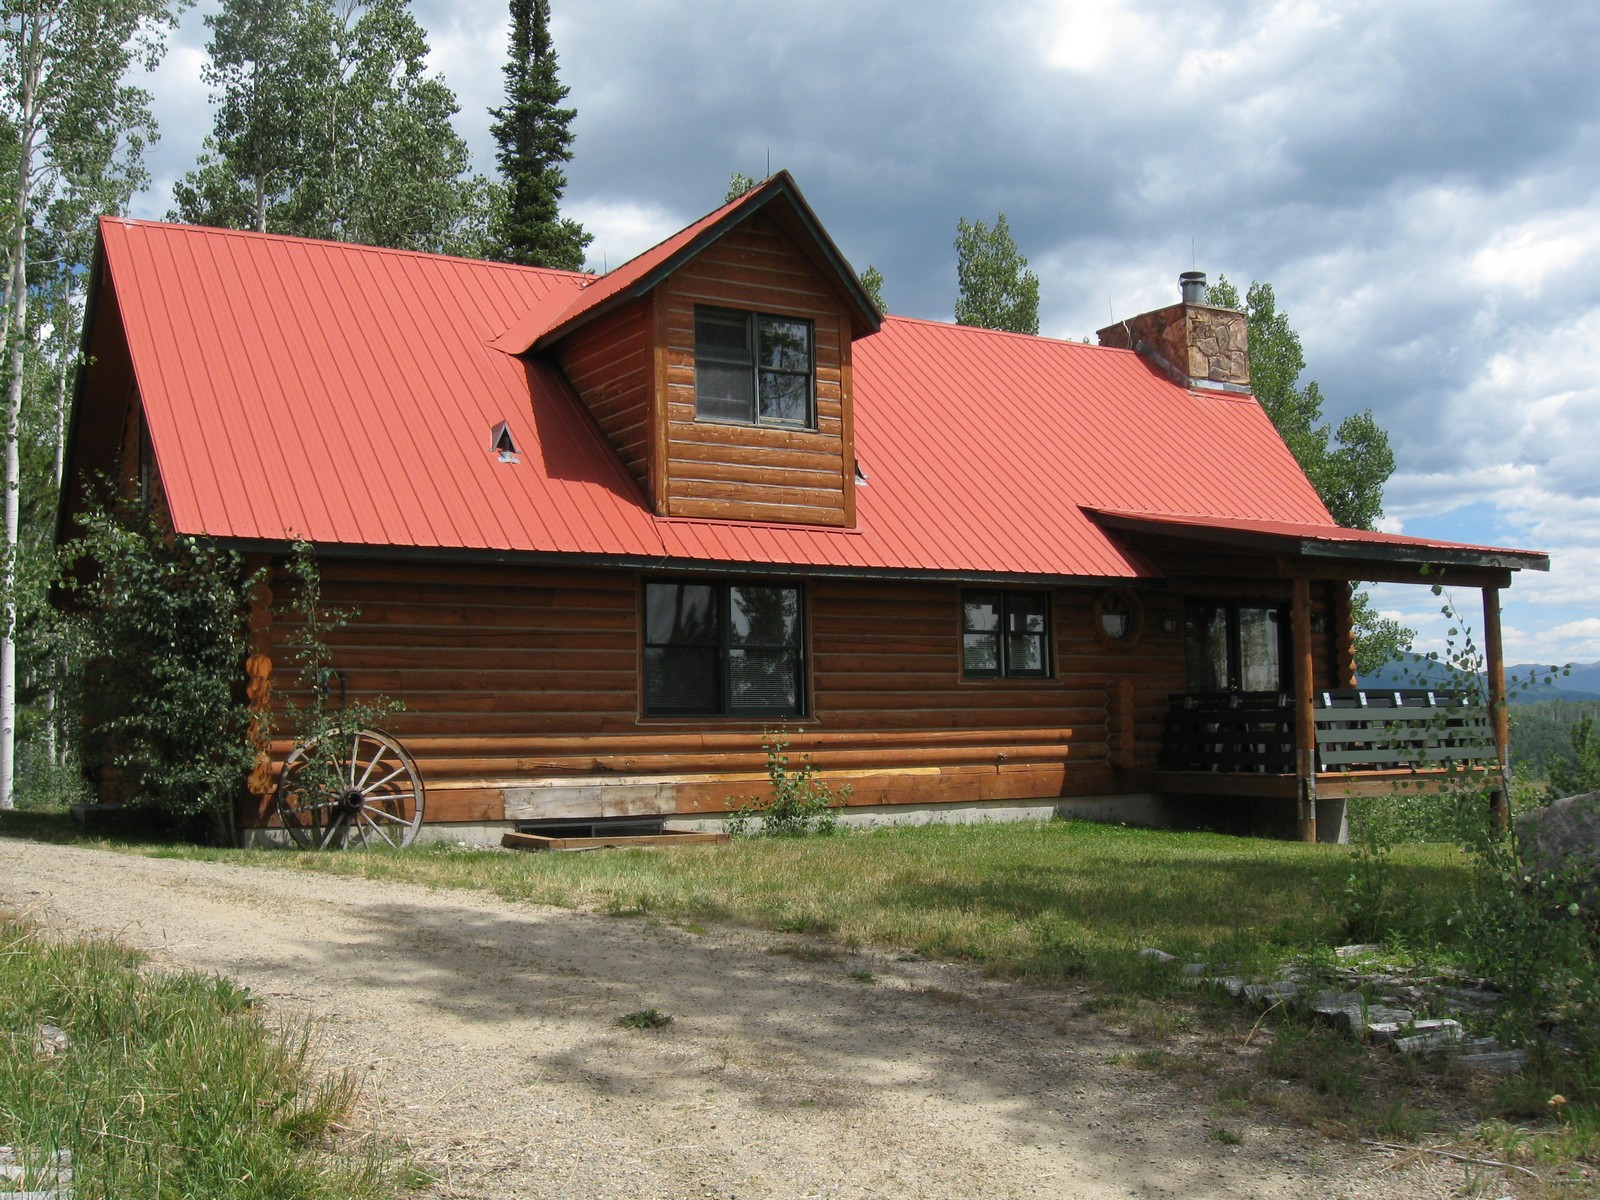 Single Family Home for Sale at ULTIMATE OUTDOOR ENTHUSIAST RETREAT! 58755 County Road 62 Clark, Colorado 80428 United States